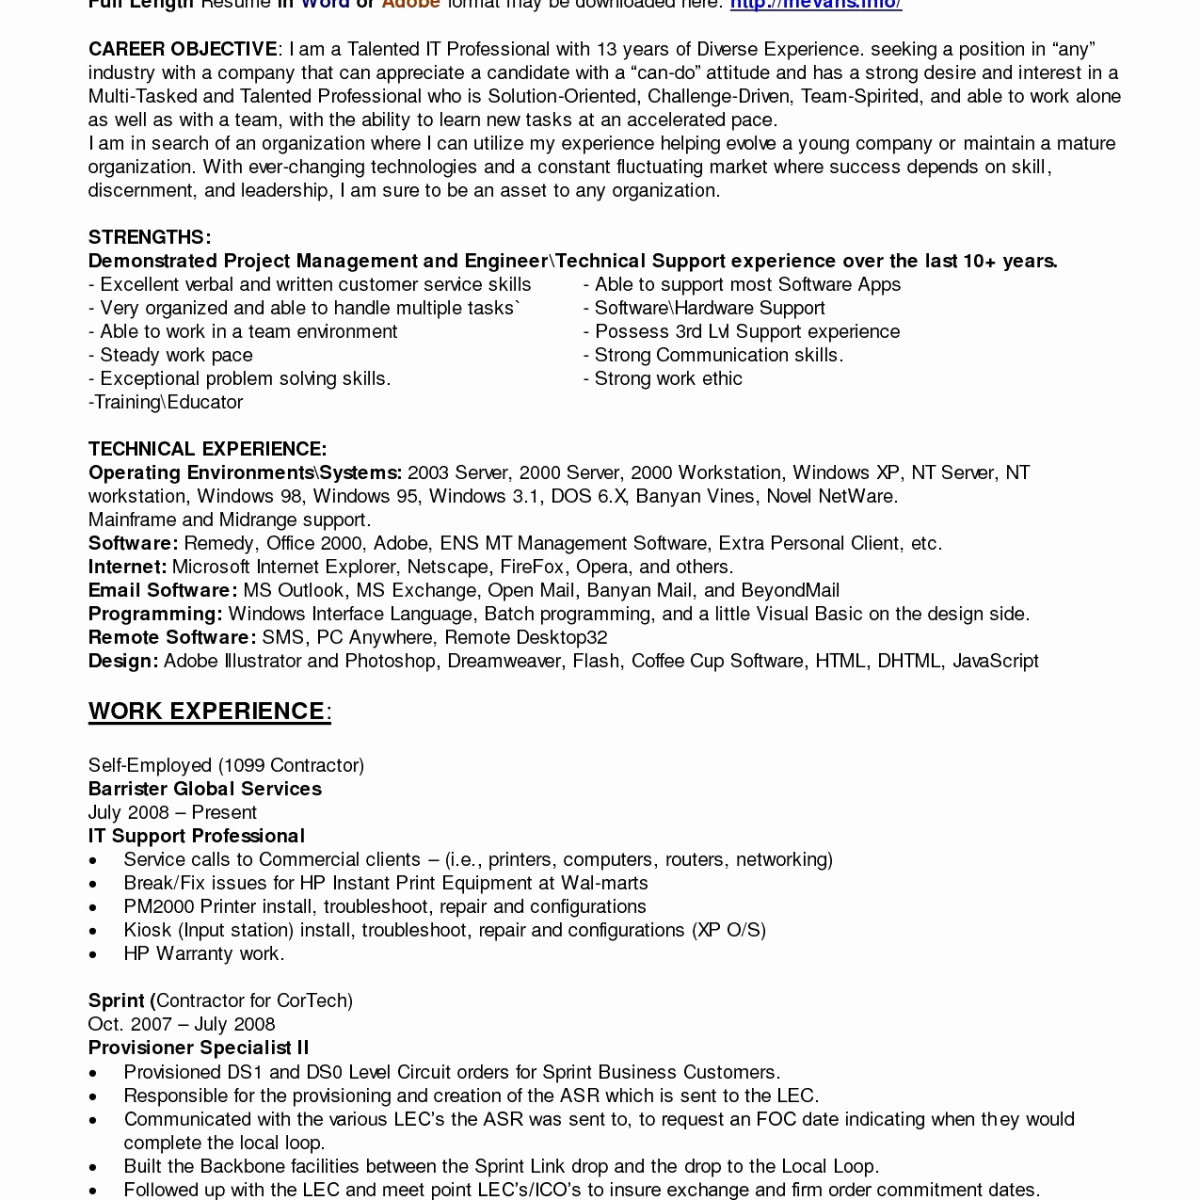 sorority resume template download Collection-Resume Work Best Service Desk Work Unique Helpdesk Resume Template New sorority Download 18-d